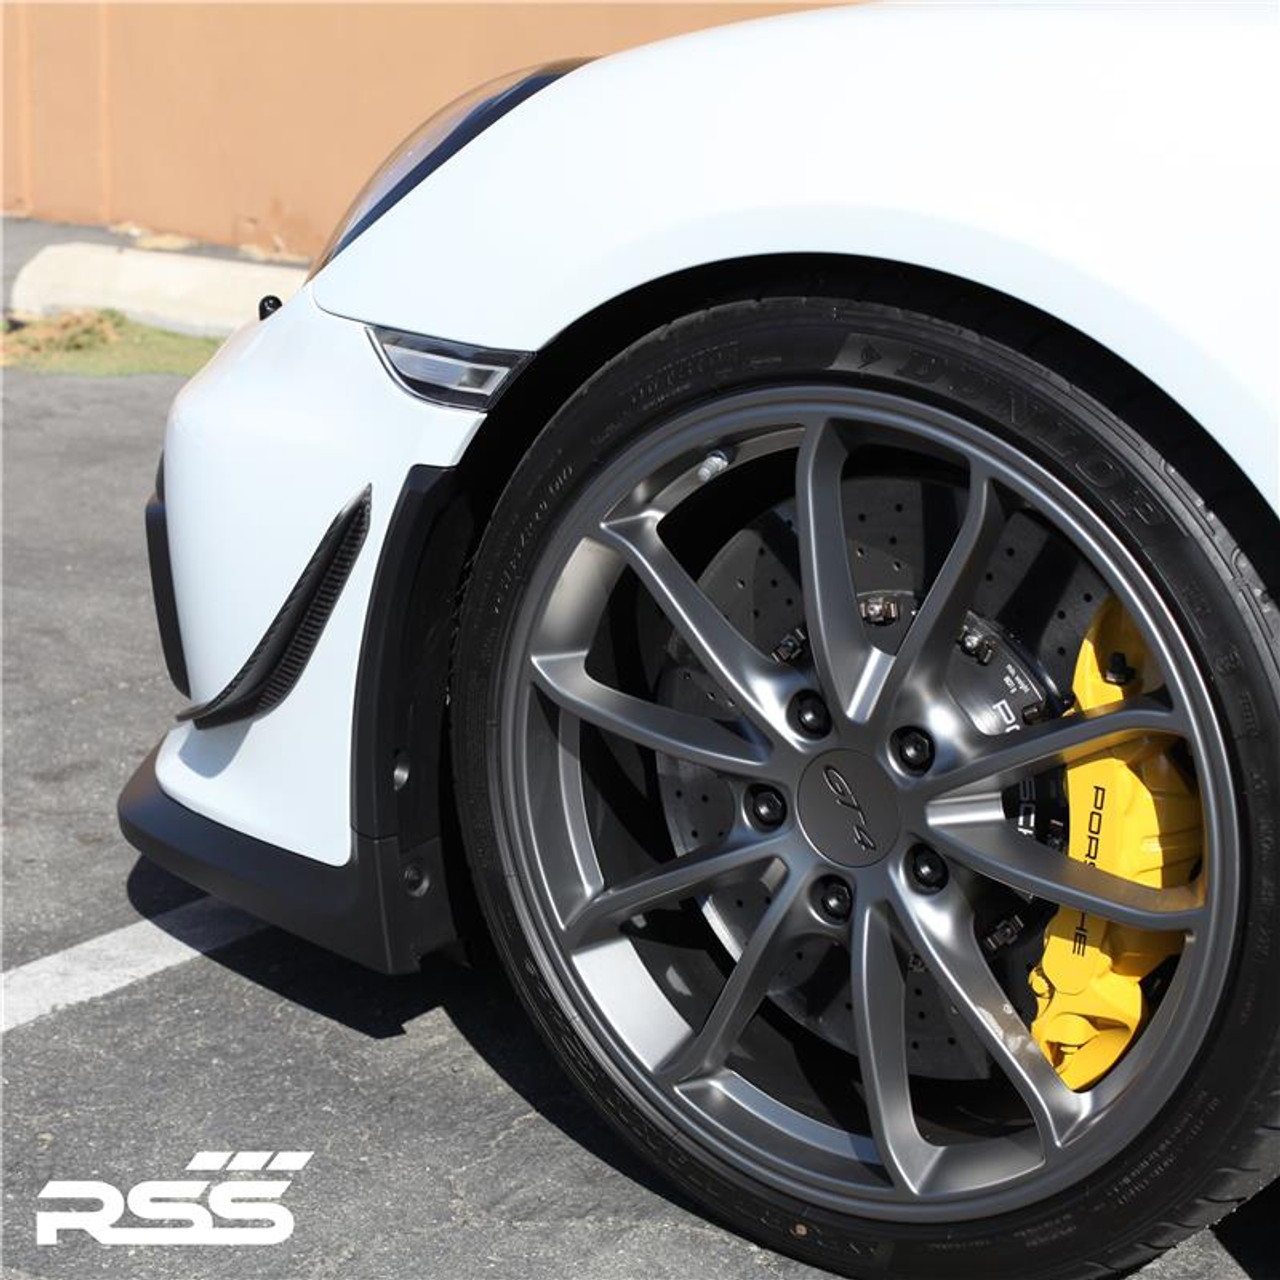 RSS - CarbonAero Kit # 251 for 981 GT4 and 981 Spyder. Includes pair of FRONT CANARDS / DIVE PLANES, Aesthetically pleasing and aggressive in appearance, Canards have a functional purpose with direct benefits on street and motorsports applications. Designed with the latest CAD technology, constructed to exacting standards with pre-preg 2×2 Carbon Fibre Twill, finished in Matte Clear Coat with UV inhibitors, adhere with 3M VHB tape for easy application and removal, and are 100% Manufactured in USA. Components are of the highest quality and are guaranteed to fit.• Produce down force by deflecting oncoming air upward resulting in a net down force on the front of the vehicle • Can direct air towards other important aero devices or cooling vents • Direct air away from the wheels and tires thereby reducing drag, turbulence and lift • Can be used to balance and tune front to rear down force levels.